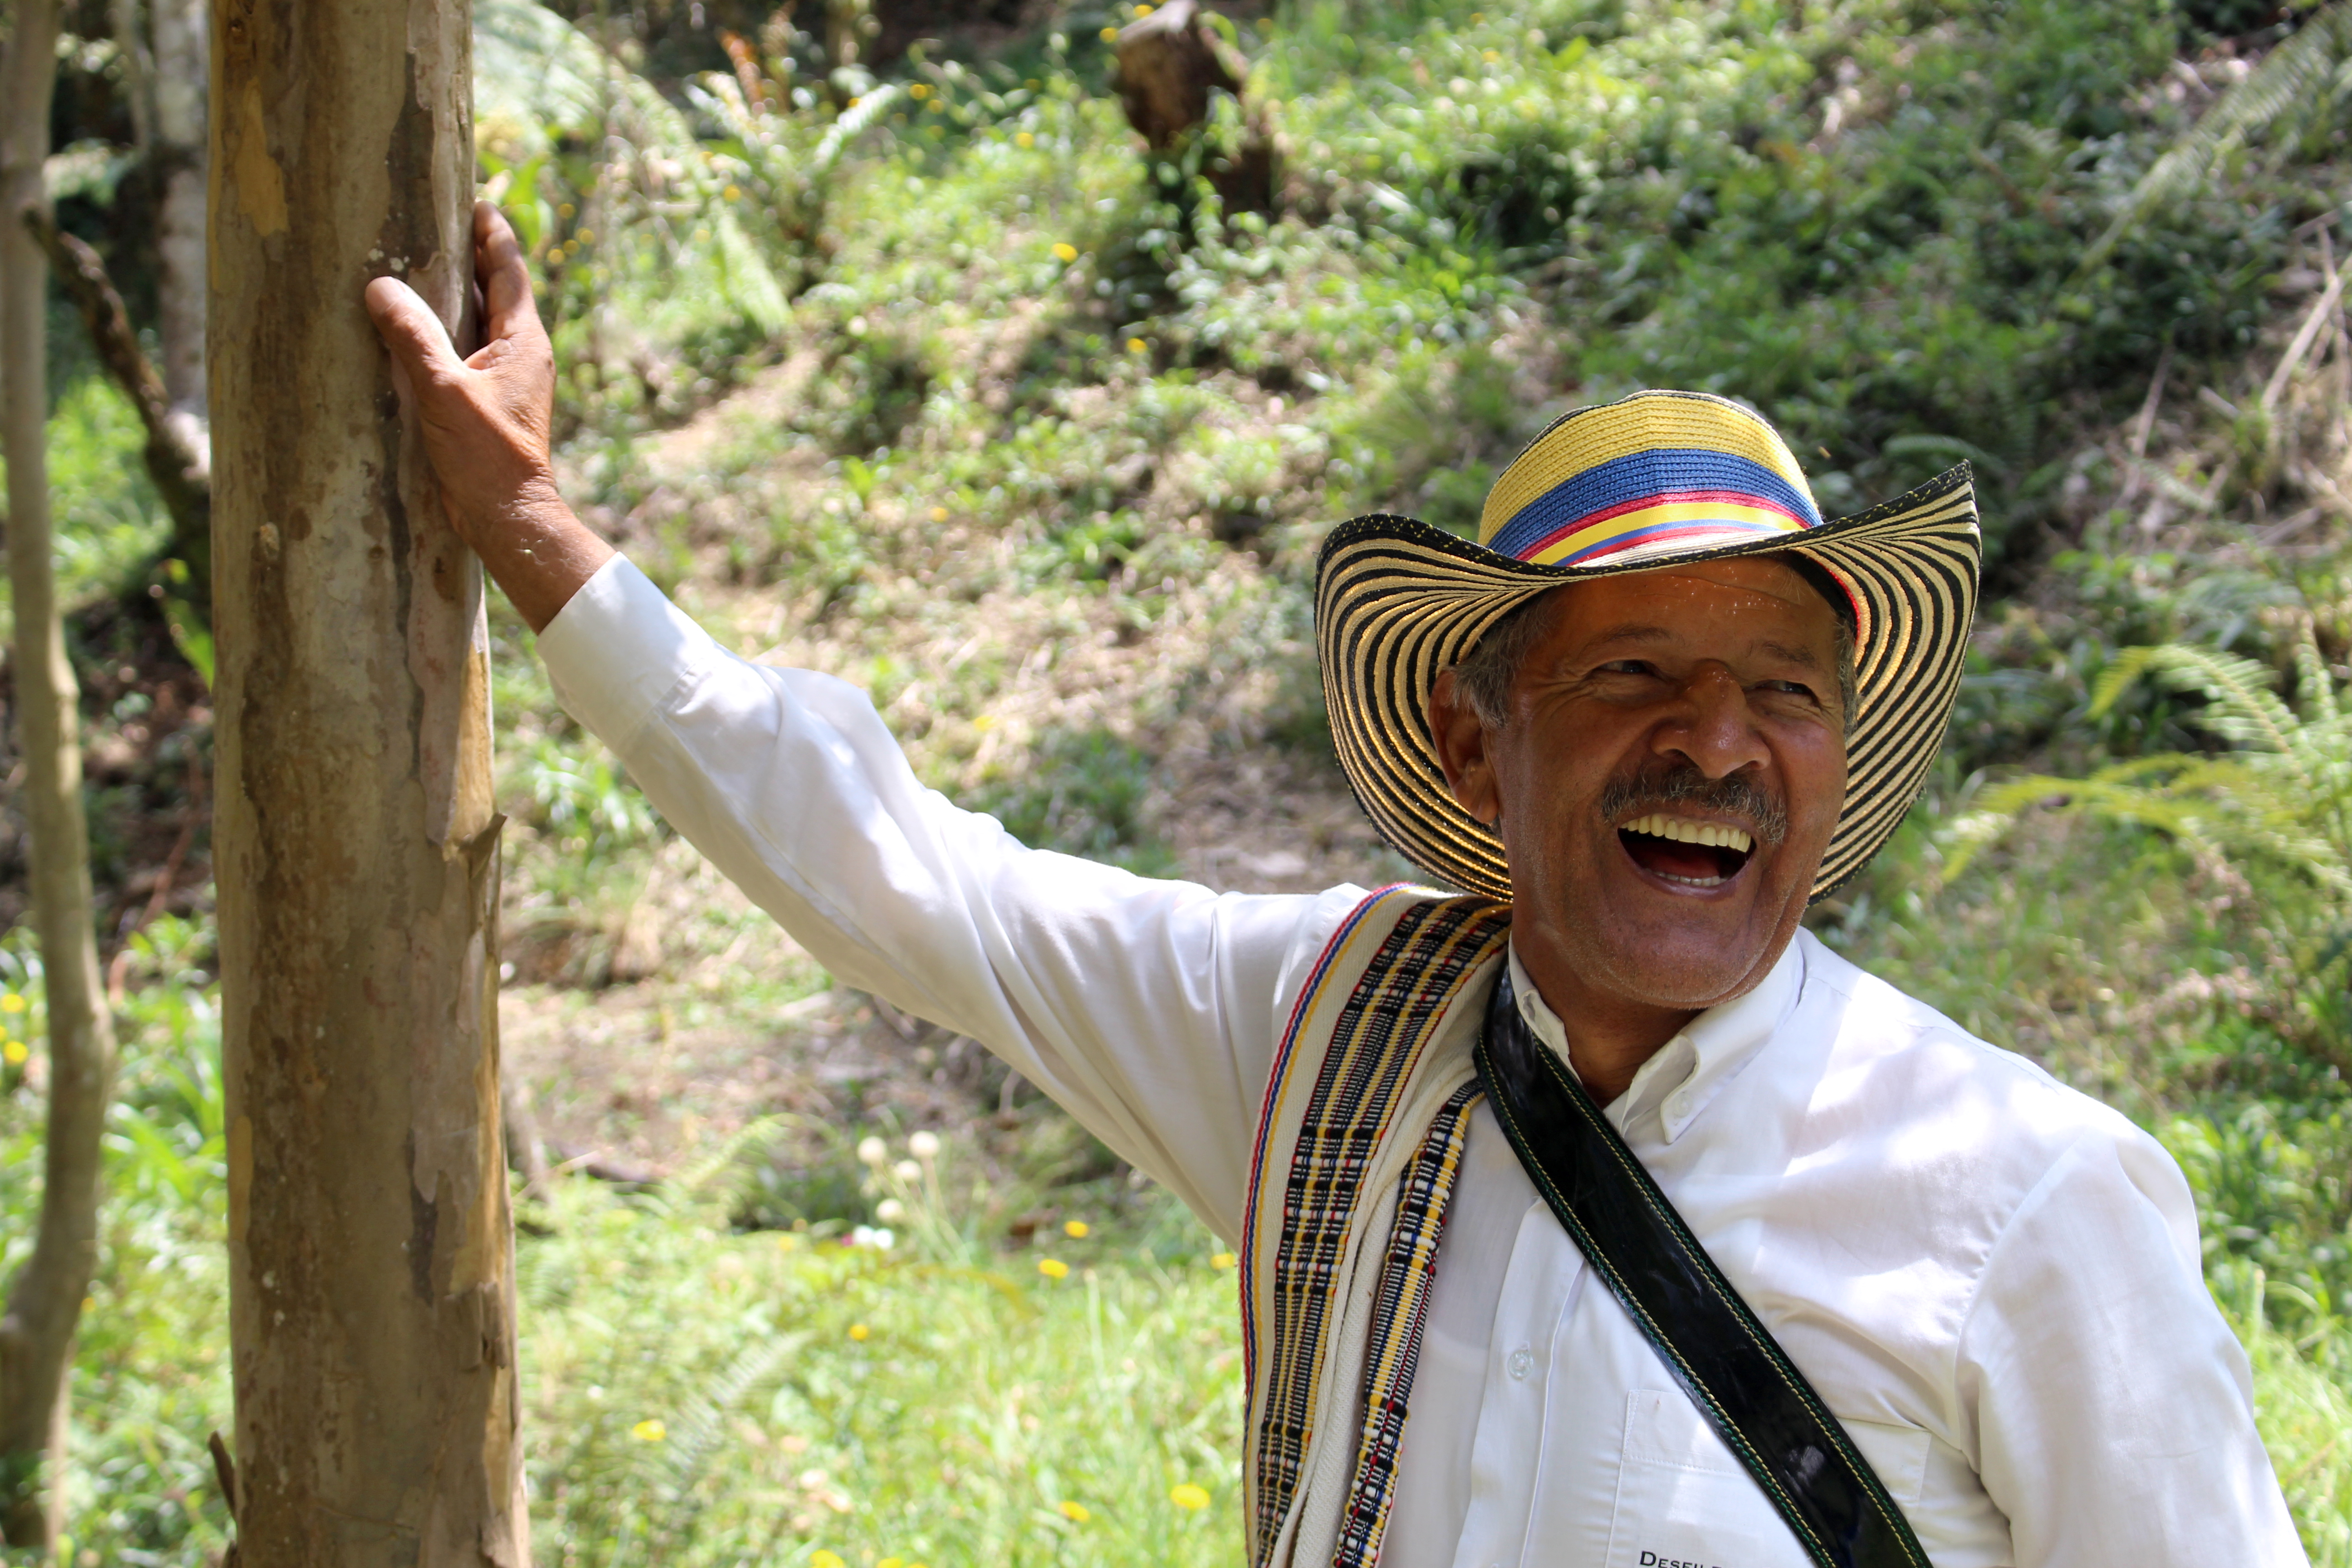 The Juan Valdez of Colombia's Flower Industry: Meet the Face of Santa Elena's 19th Century Silletero Tradition